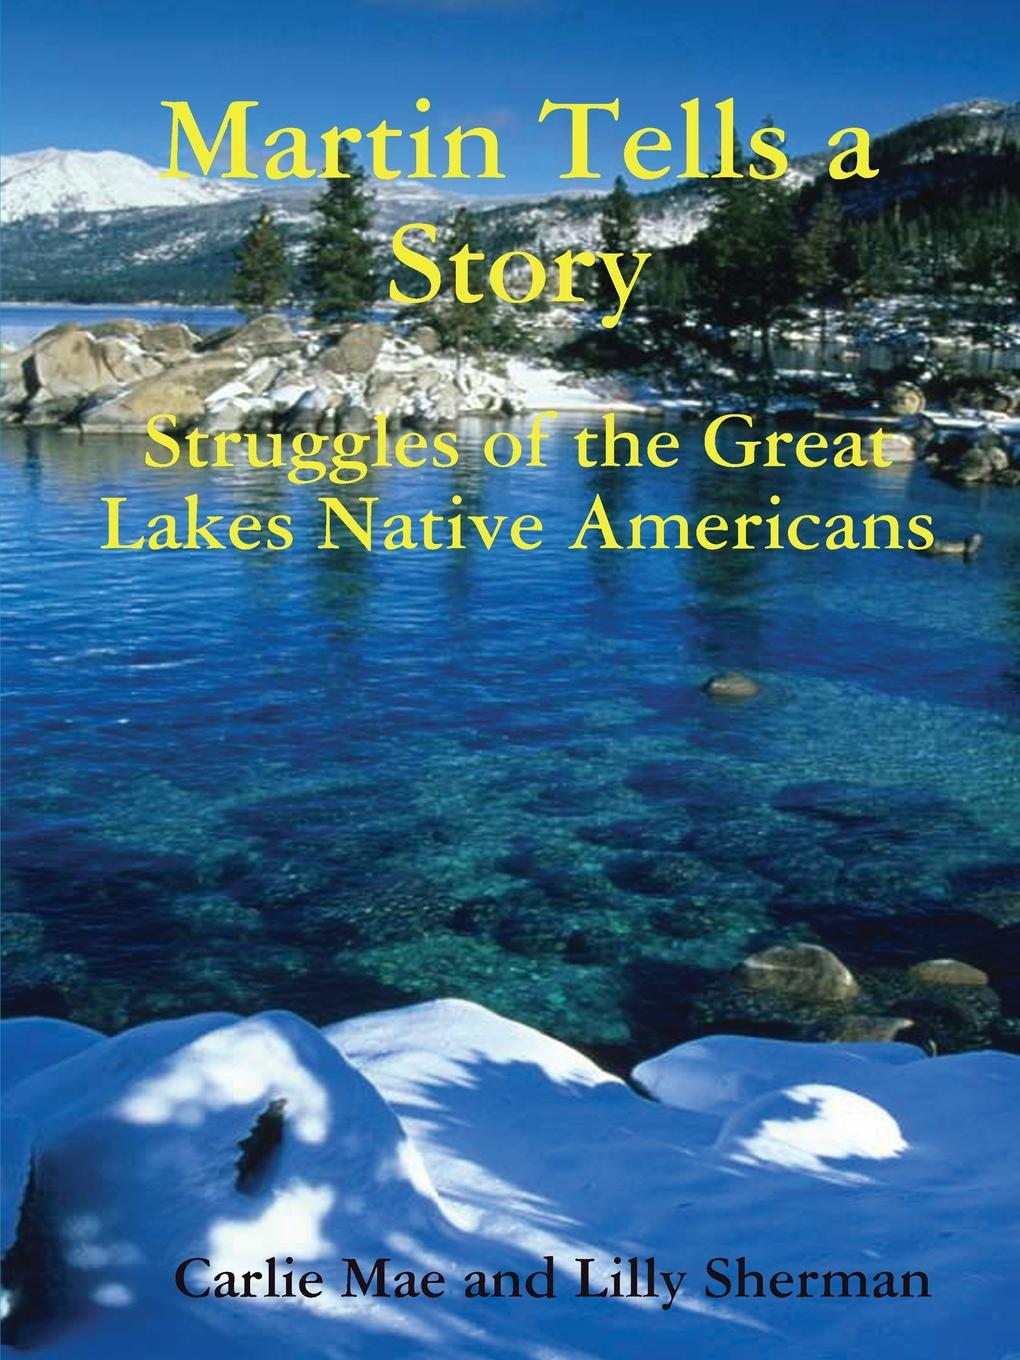 Carlie Mae Martin Tells a Story. Struggles of the Great Lakes Native Americans lakes restaurant